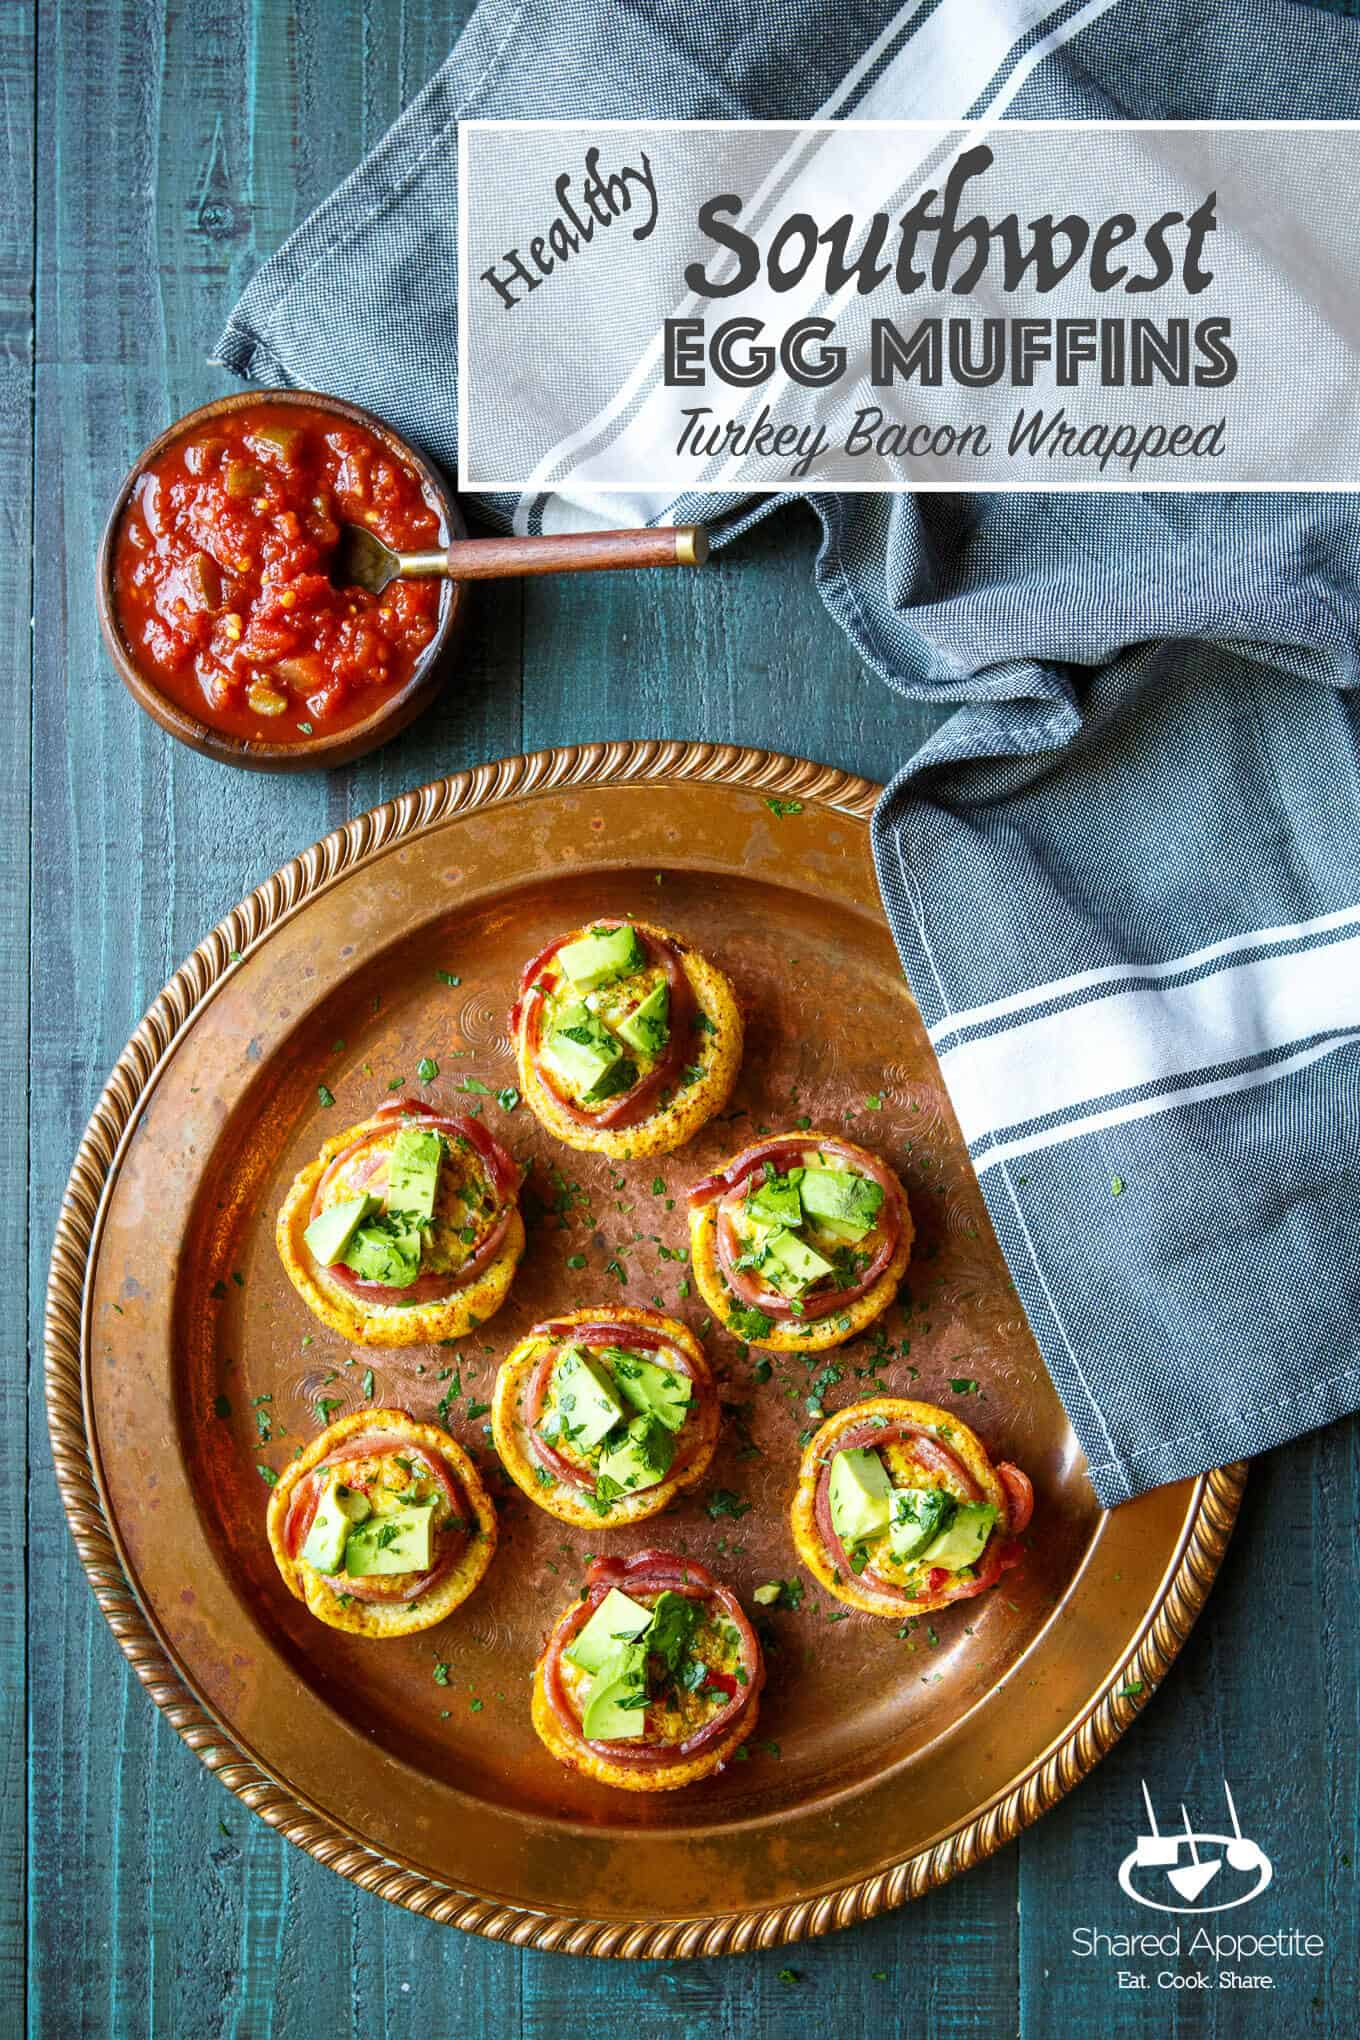 Healthy Turkey Bacon Wrapped Southwest Egg Muffins